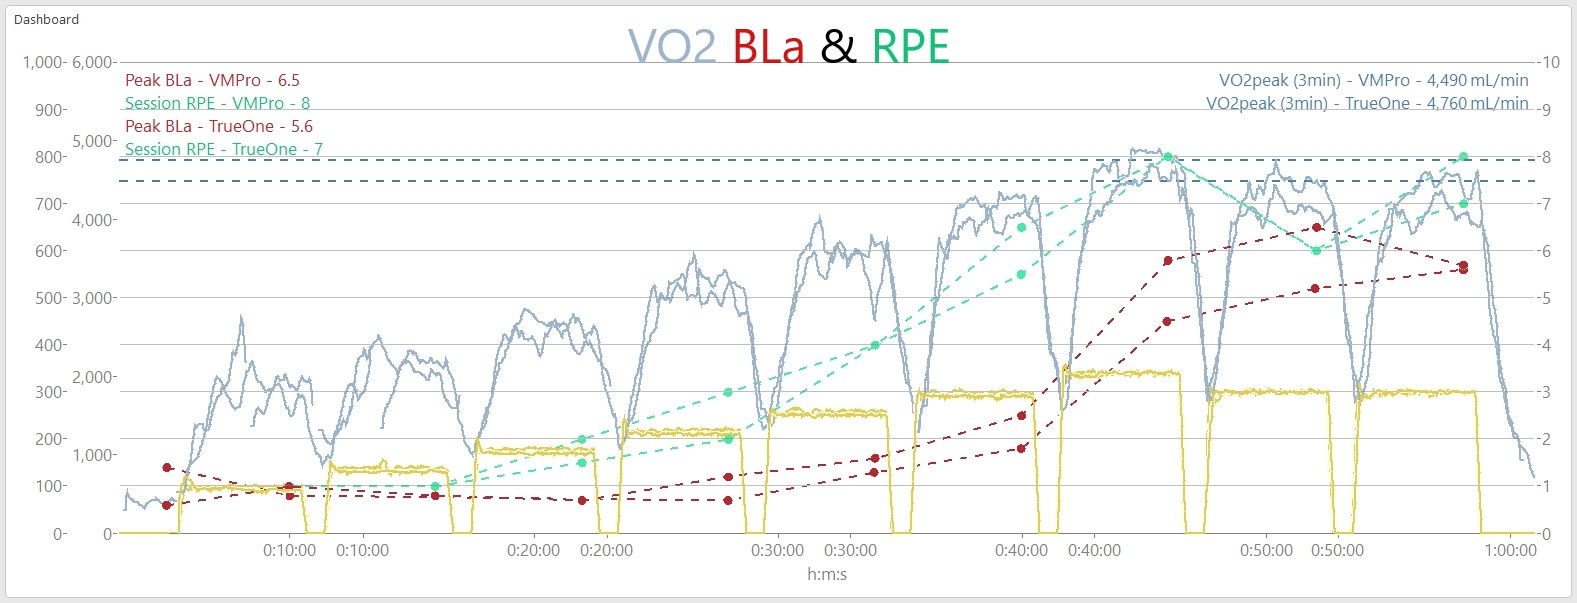 5-1_VO2_BLa_RPE_ComparisonText